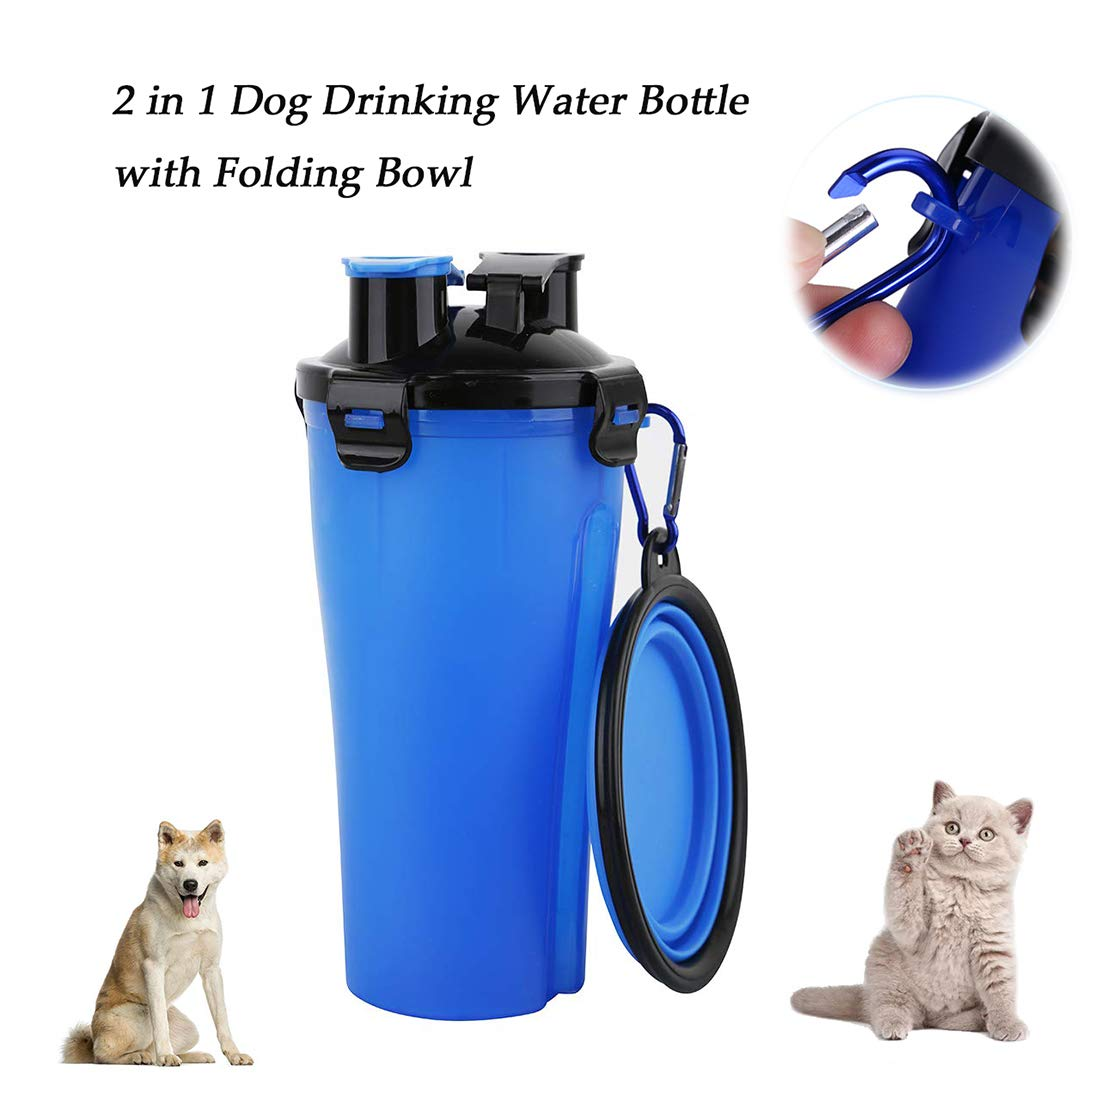 Pet Two Water Cups Single Cup + Single Bowl Multifunctional Portable 2 in 1 Water Bottle Food Container for Cat Dog Outdoor Travel (Two Sets) by LL dawn